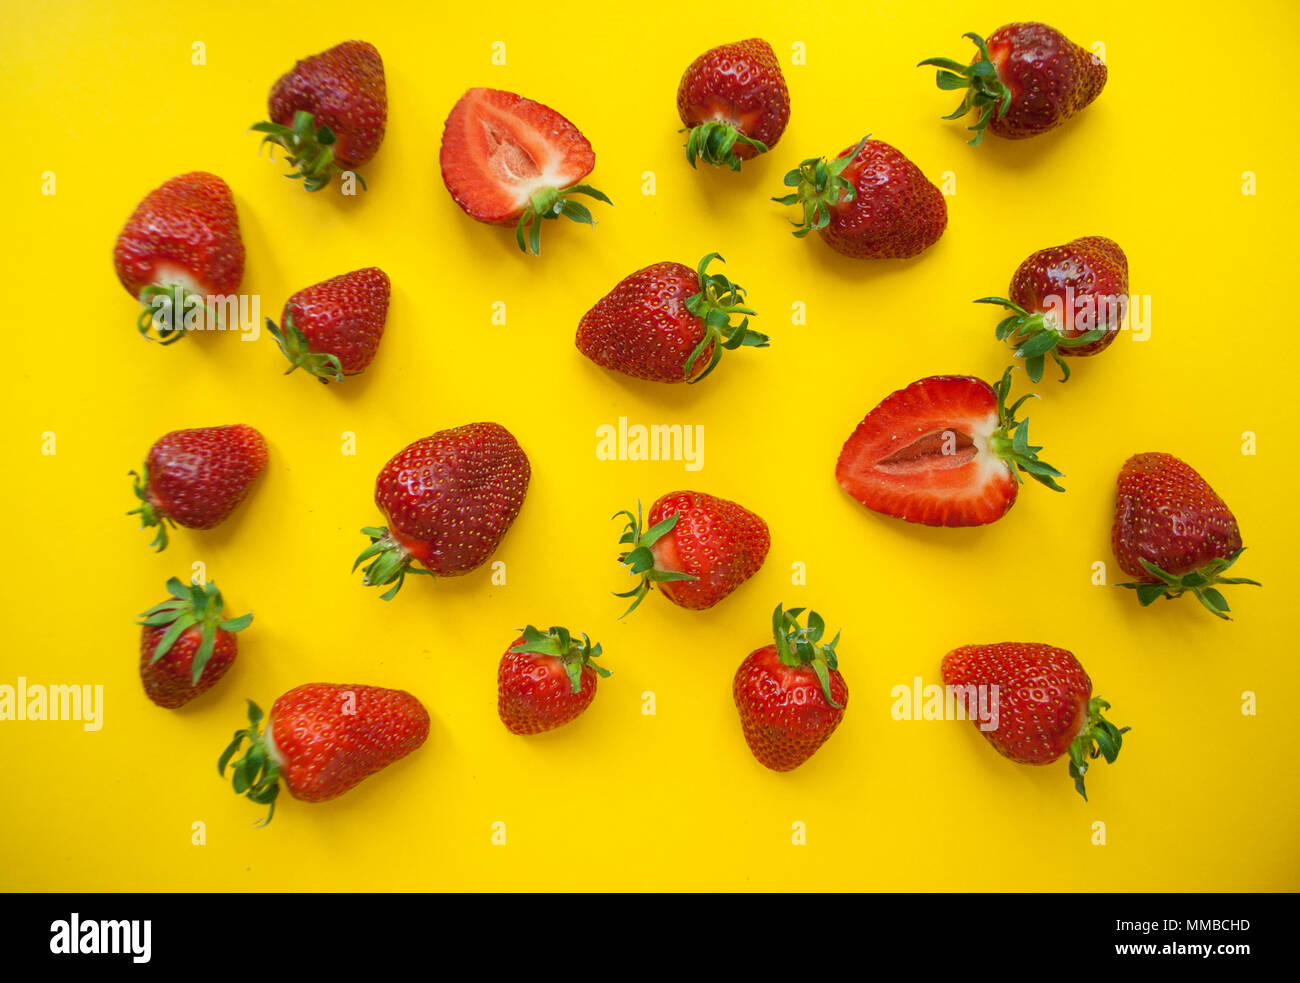 Red juicy strawberries on bright yellow background. - Stock Image